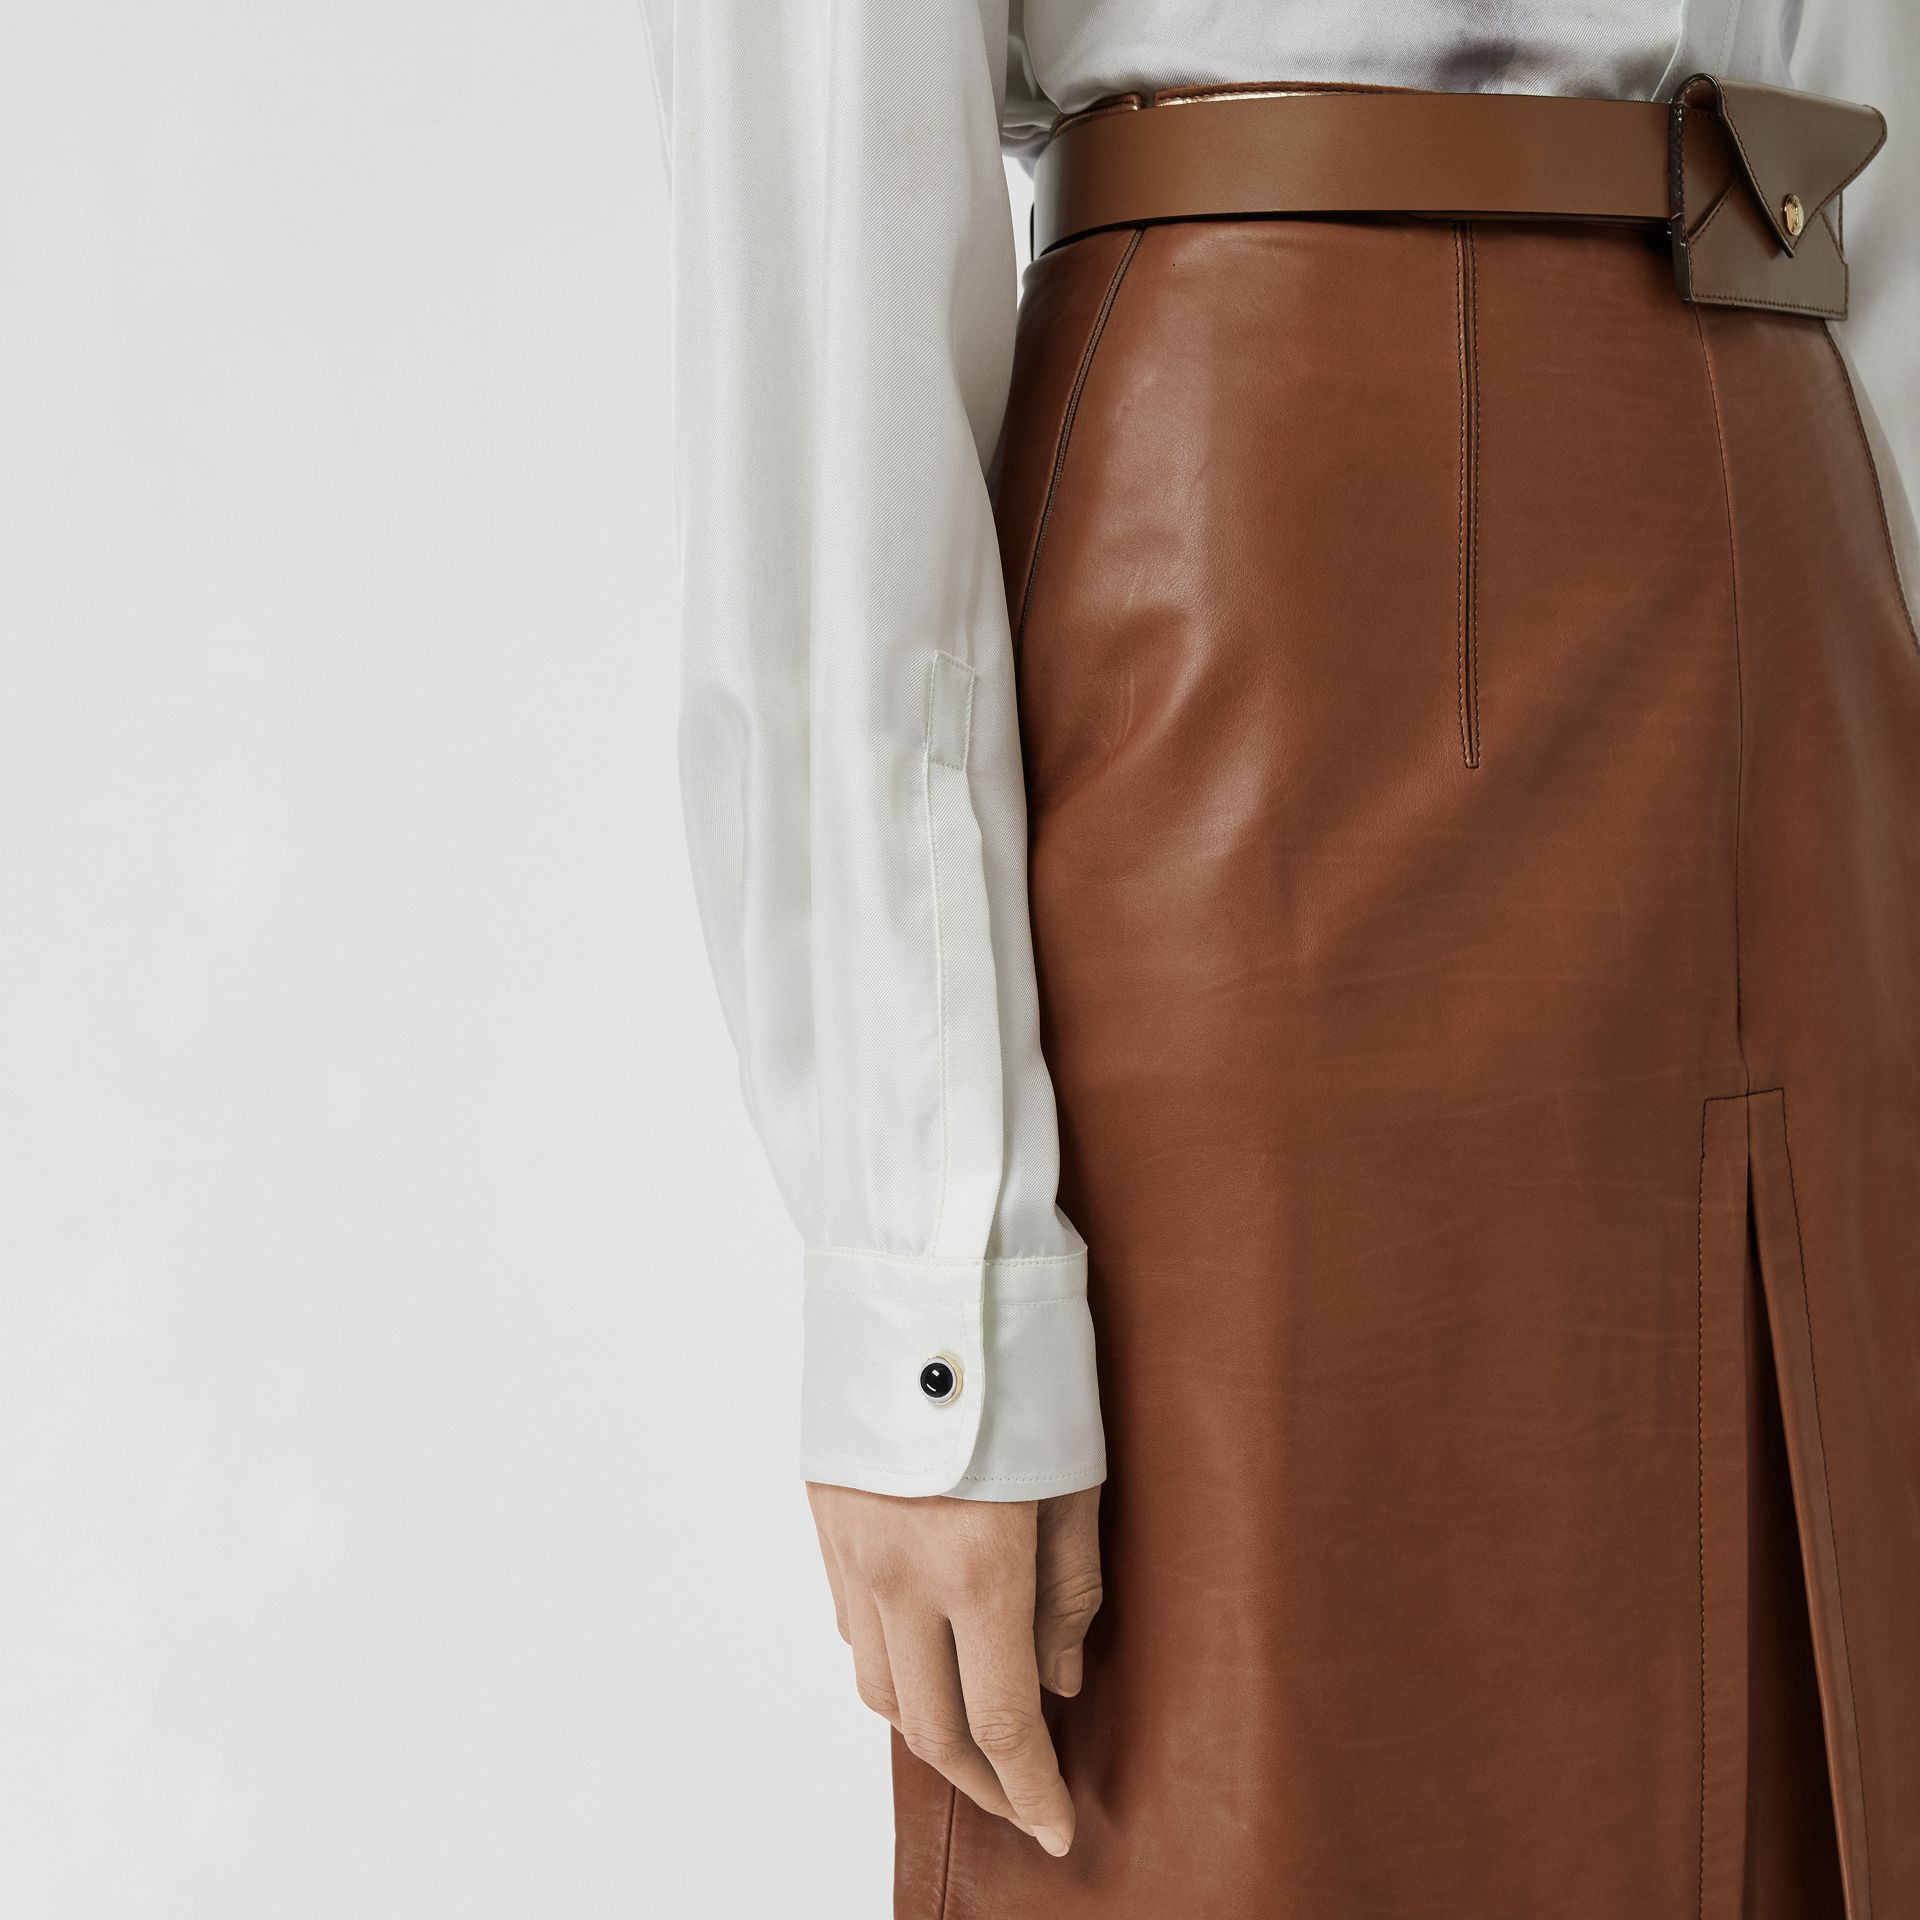 Box Pleat Detail Leather A-line Skirt in Flaxseed - Women | Burberry Canada - gallery image 1